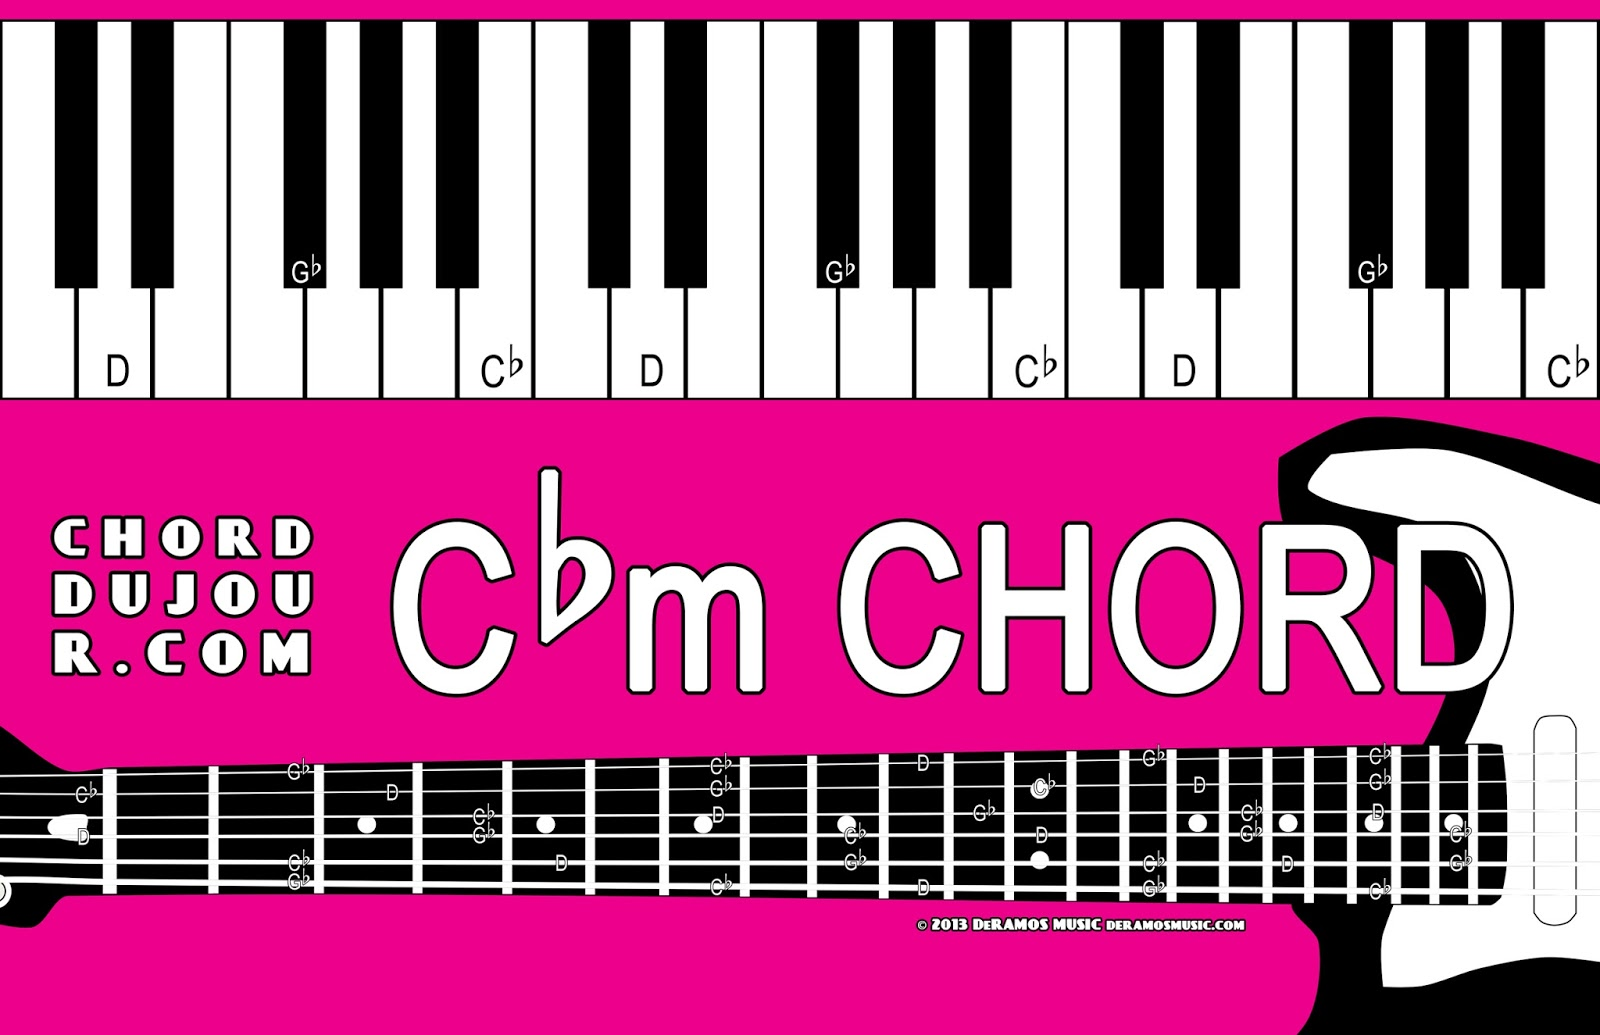 Chord du jour dictionary cbm chord the c flat minor chord name makes sense for some scales otherwise you want the bm chord here is an alternate non c e g spelling of the chord hexwebz Gallery